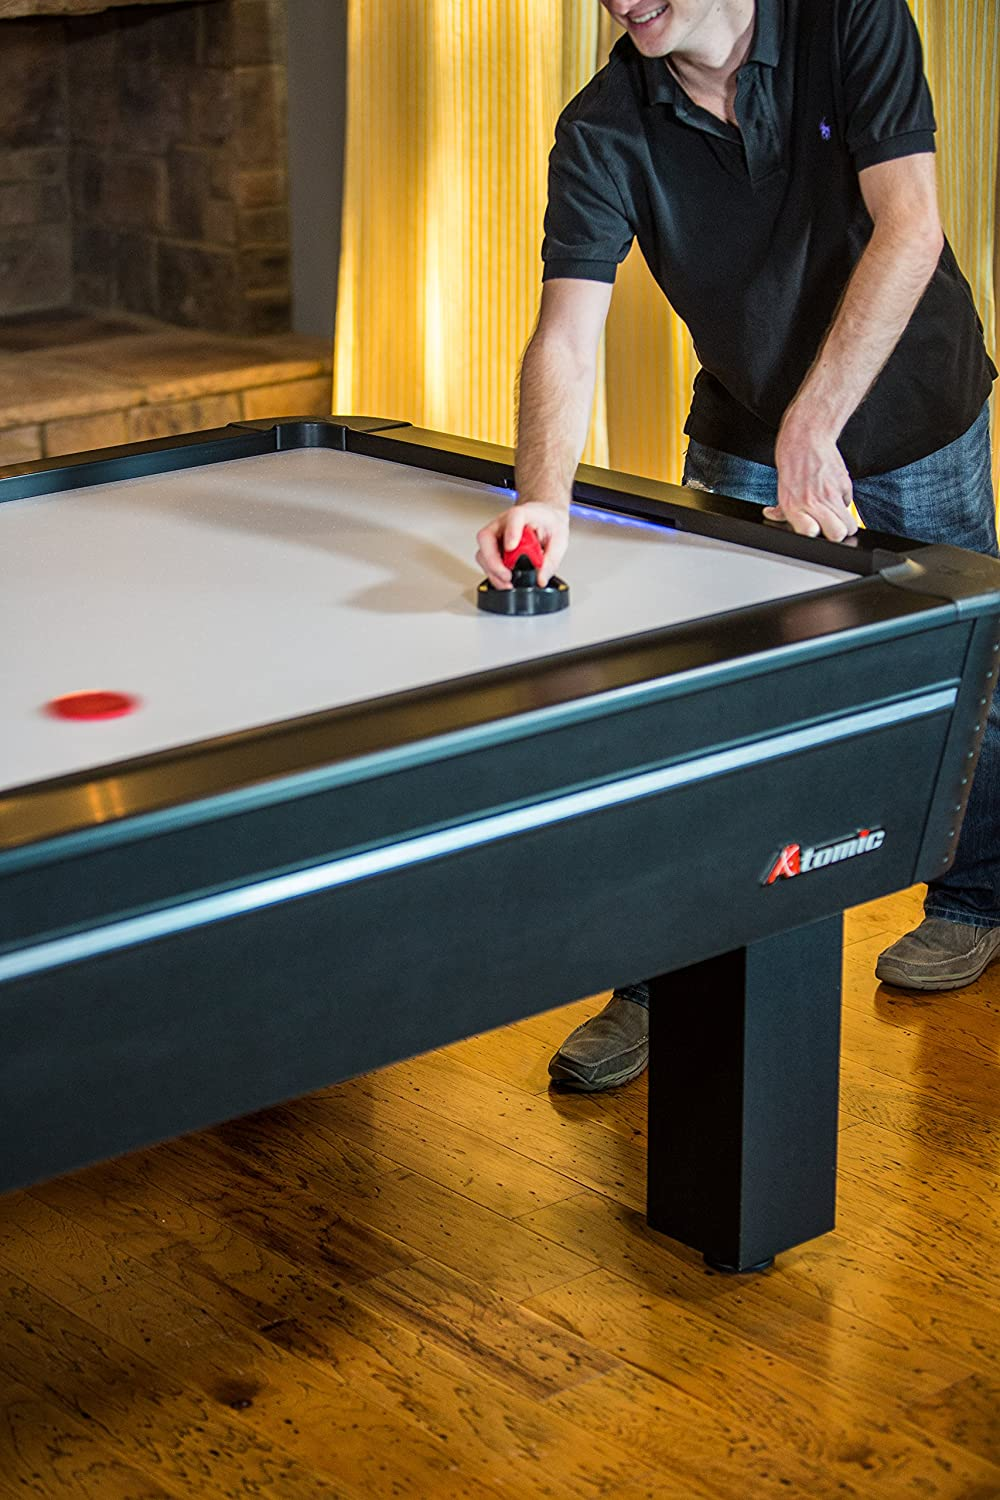 Atomic 8' Air Hockey Table with High-powered Blower with Advanced Air-flow System, LED Scoreboard, Goal Lights and Puck Return and Super-slick Playfield to Resist Scuffing : Air Hockey Equipment : Sports & Outdoors